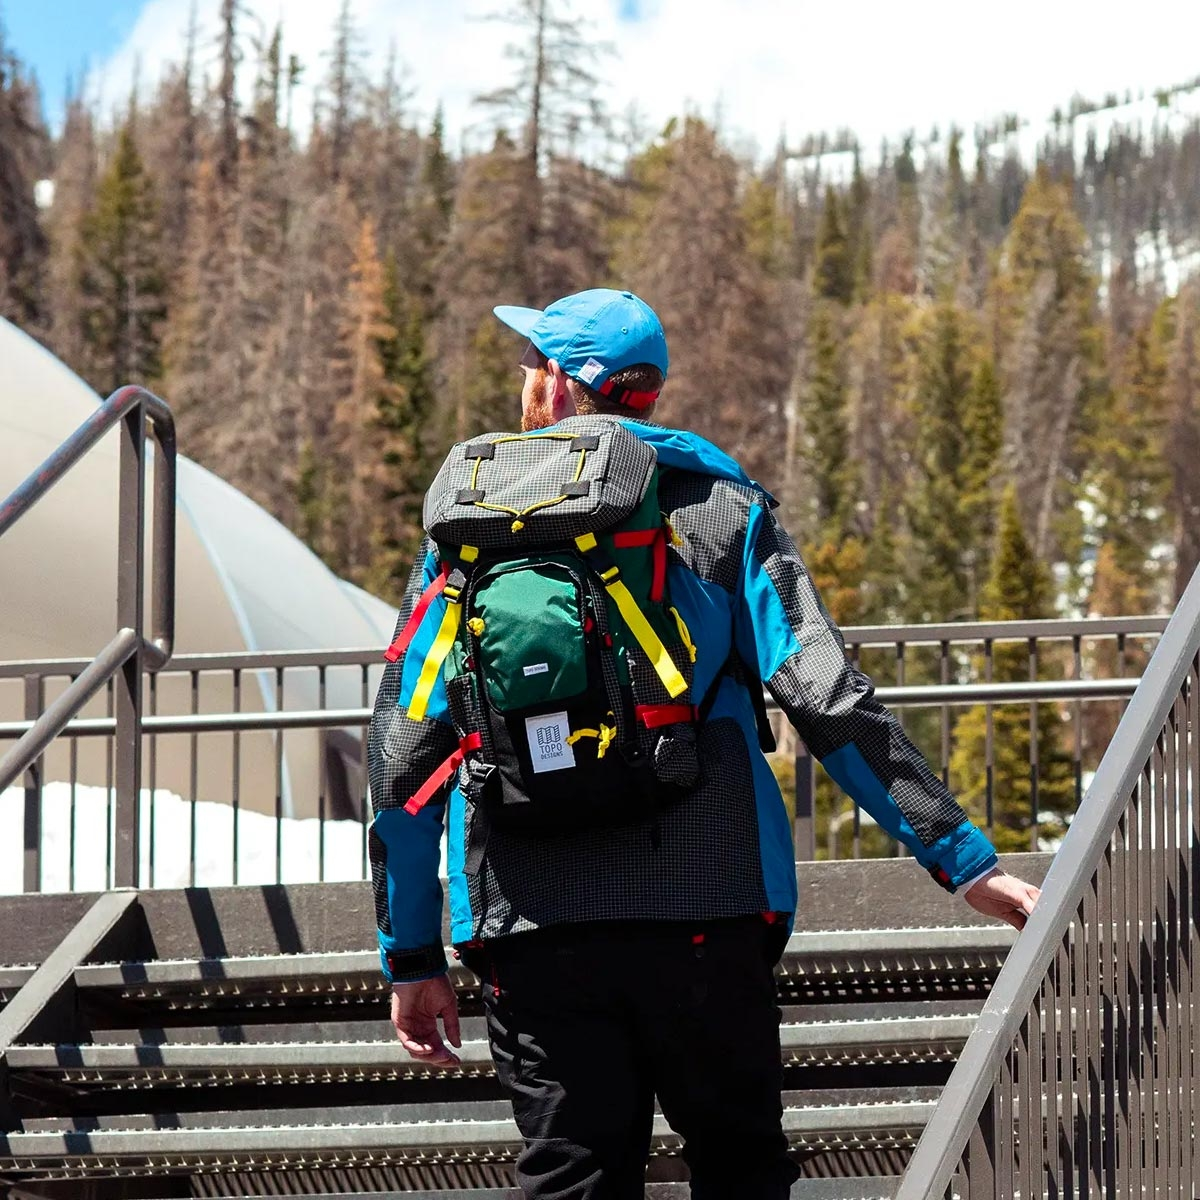 Topo Designs Topo Designs Subalpine Pack Forest, combines the functionality of classic hiking packs with unmistakably Topo Designs styling